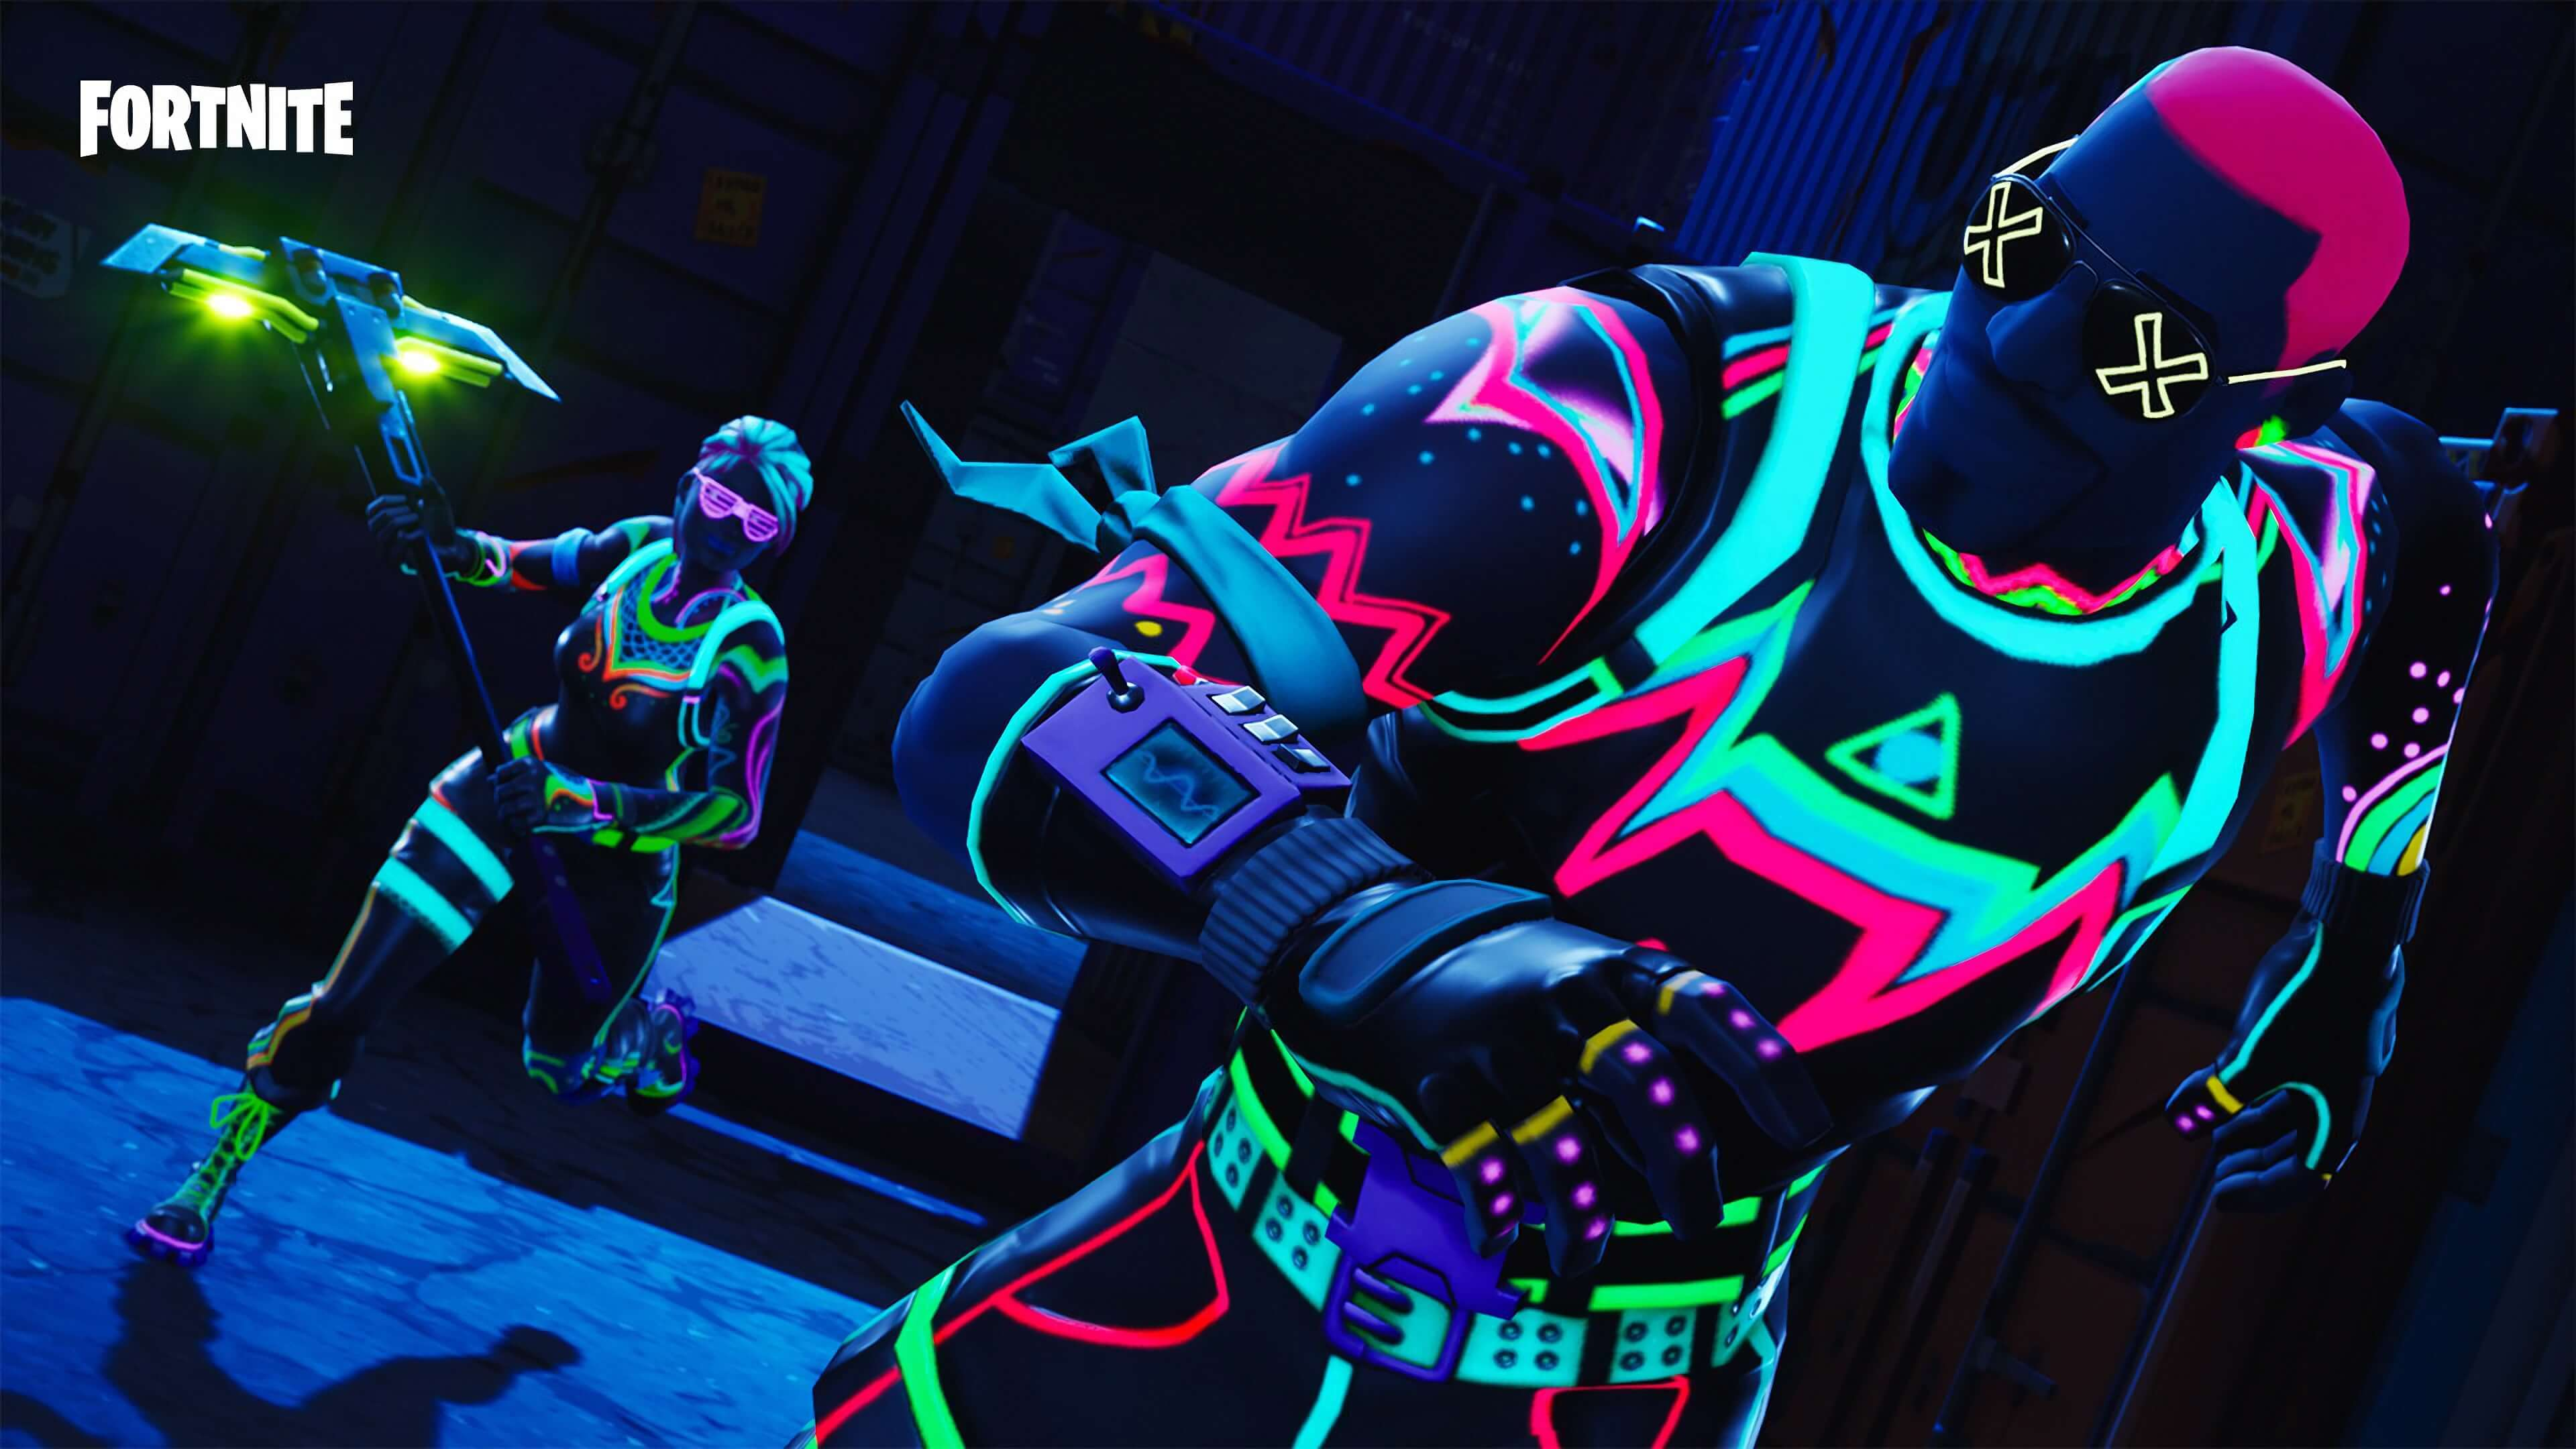 Neon Fortnite Wallpapers Wallpaper Cave